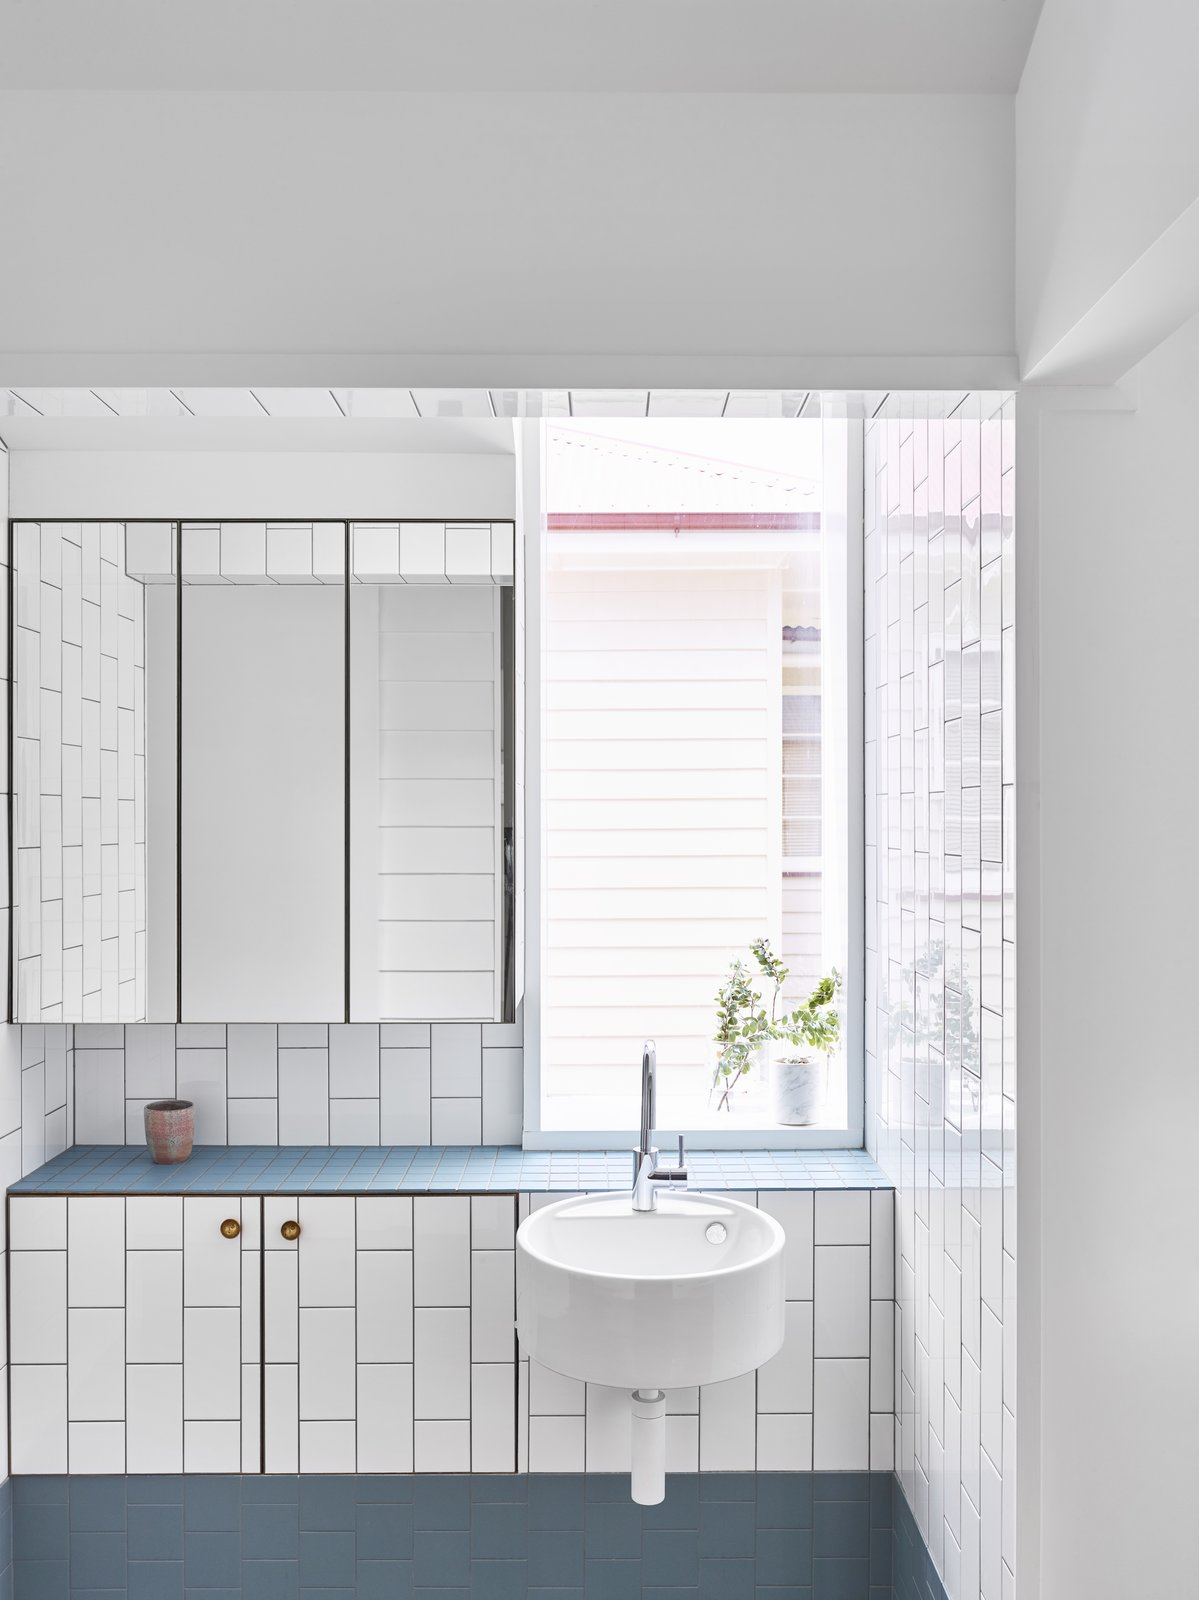 Bath, Ceramic Tile, Wall Mount, Tile, and Subway Tile At the sink area is built-in storage and a floating glass medicine cabinet.    Best Bath Enclosed Wall Wall Mount Ceramic Tile Photos from A Small Australian Cottage Becomes an Airy Gathering Hub